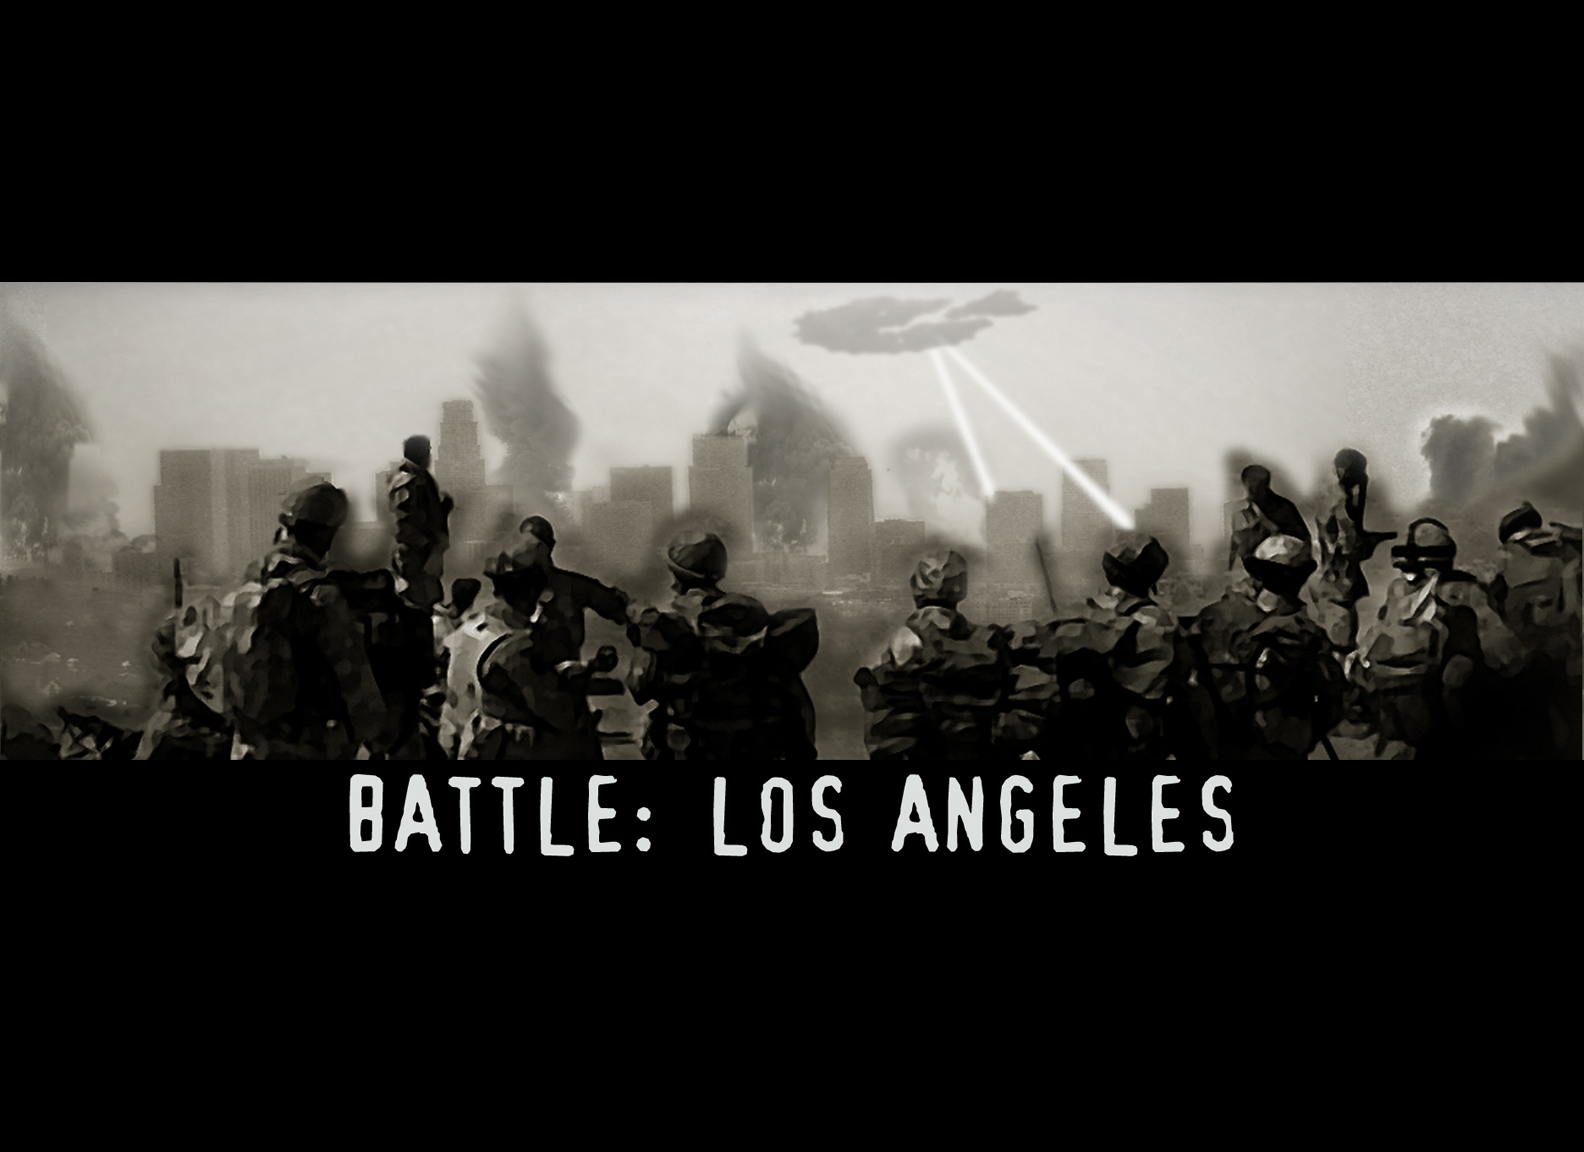 https://i2.wp.com/www.krackblog.com/wp-content/uploads/2011/03/BattleLA_logo_text_081909.jpg